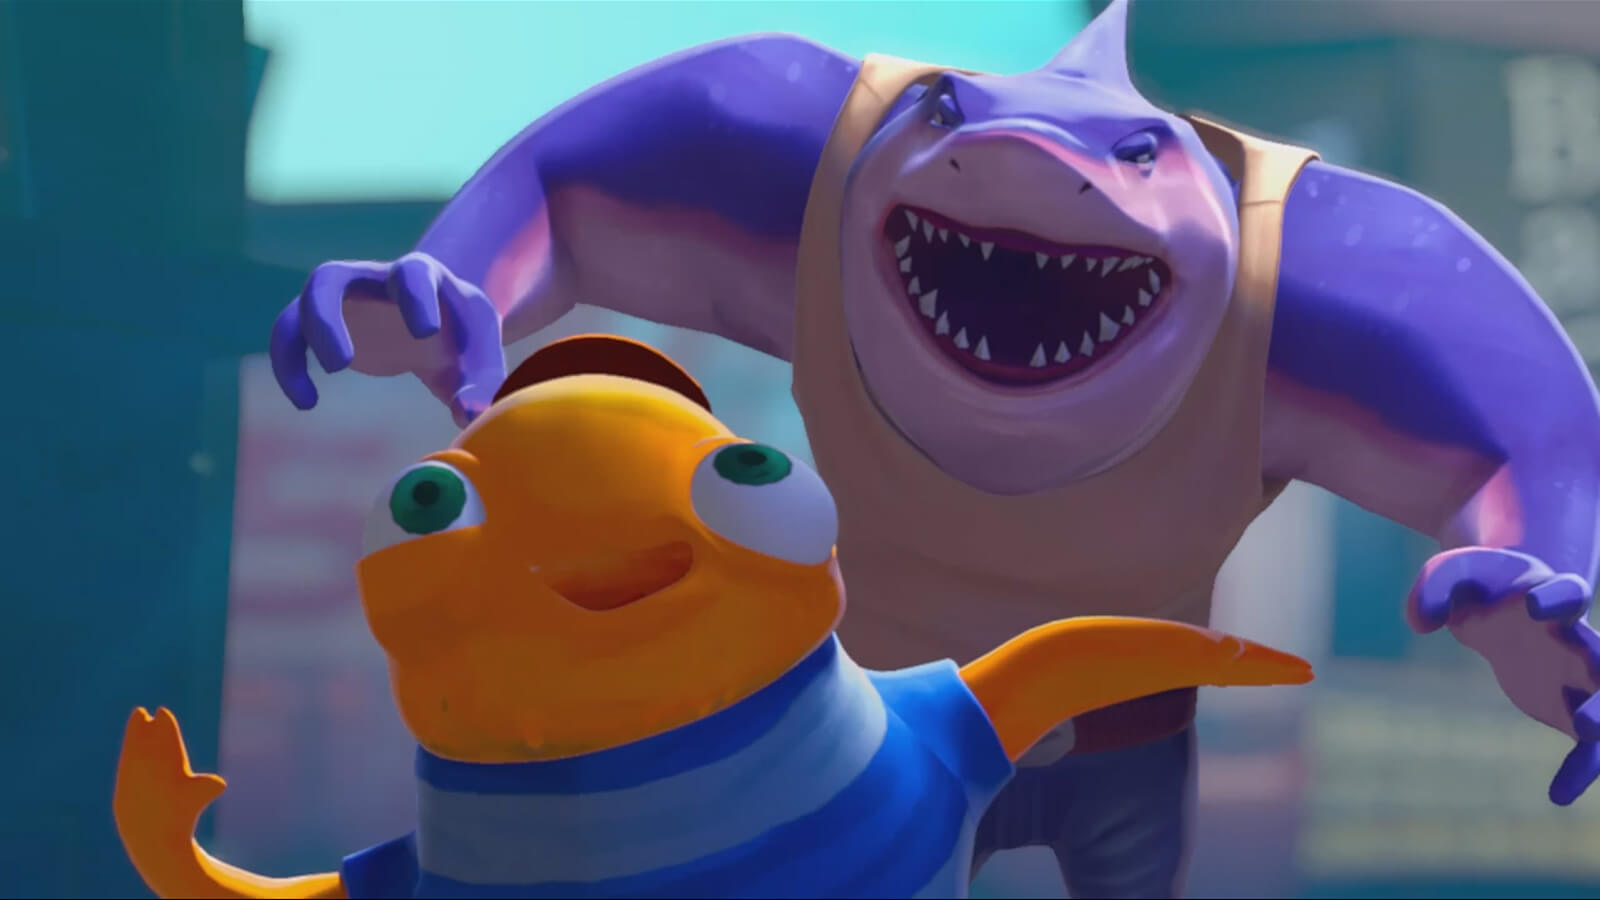 A purple shark in jeans bares his teeth coming up behind a small orange fish in a blue-striped t-shirt